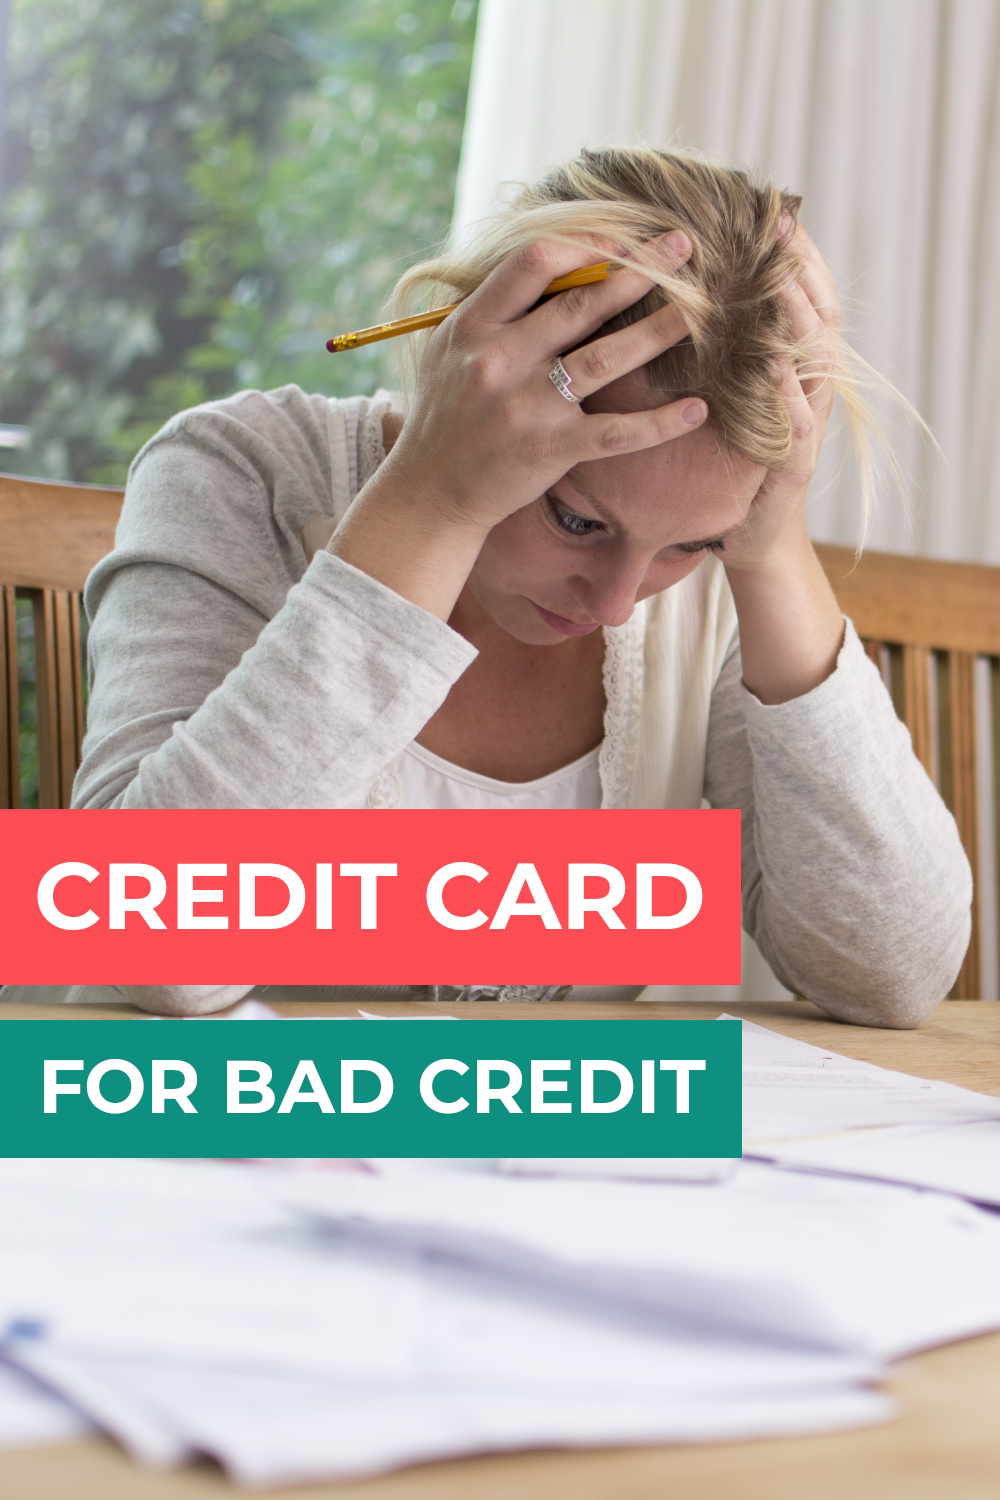 How to get a credit card with bad credit - the complete guide to help you with your application